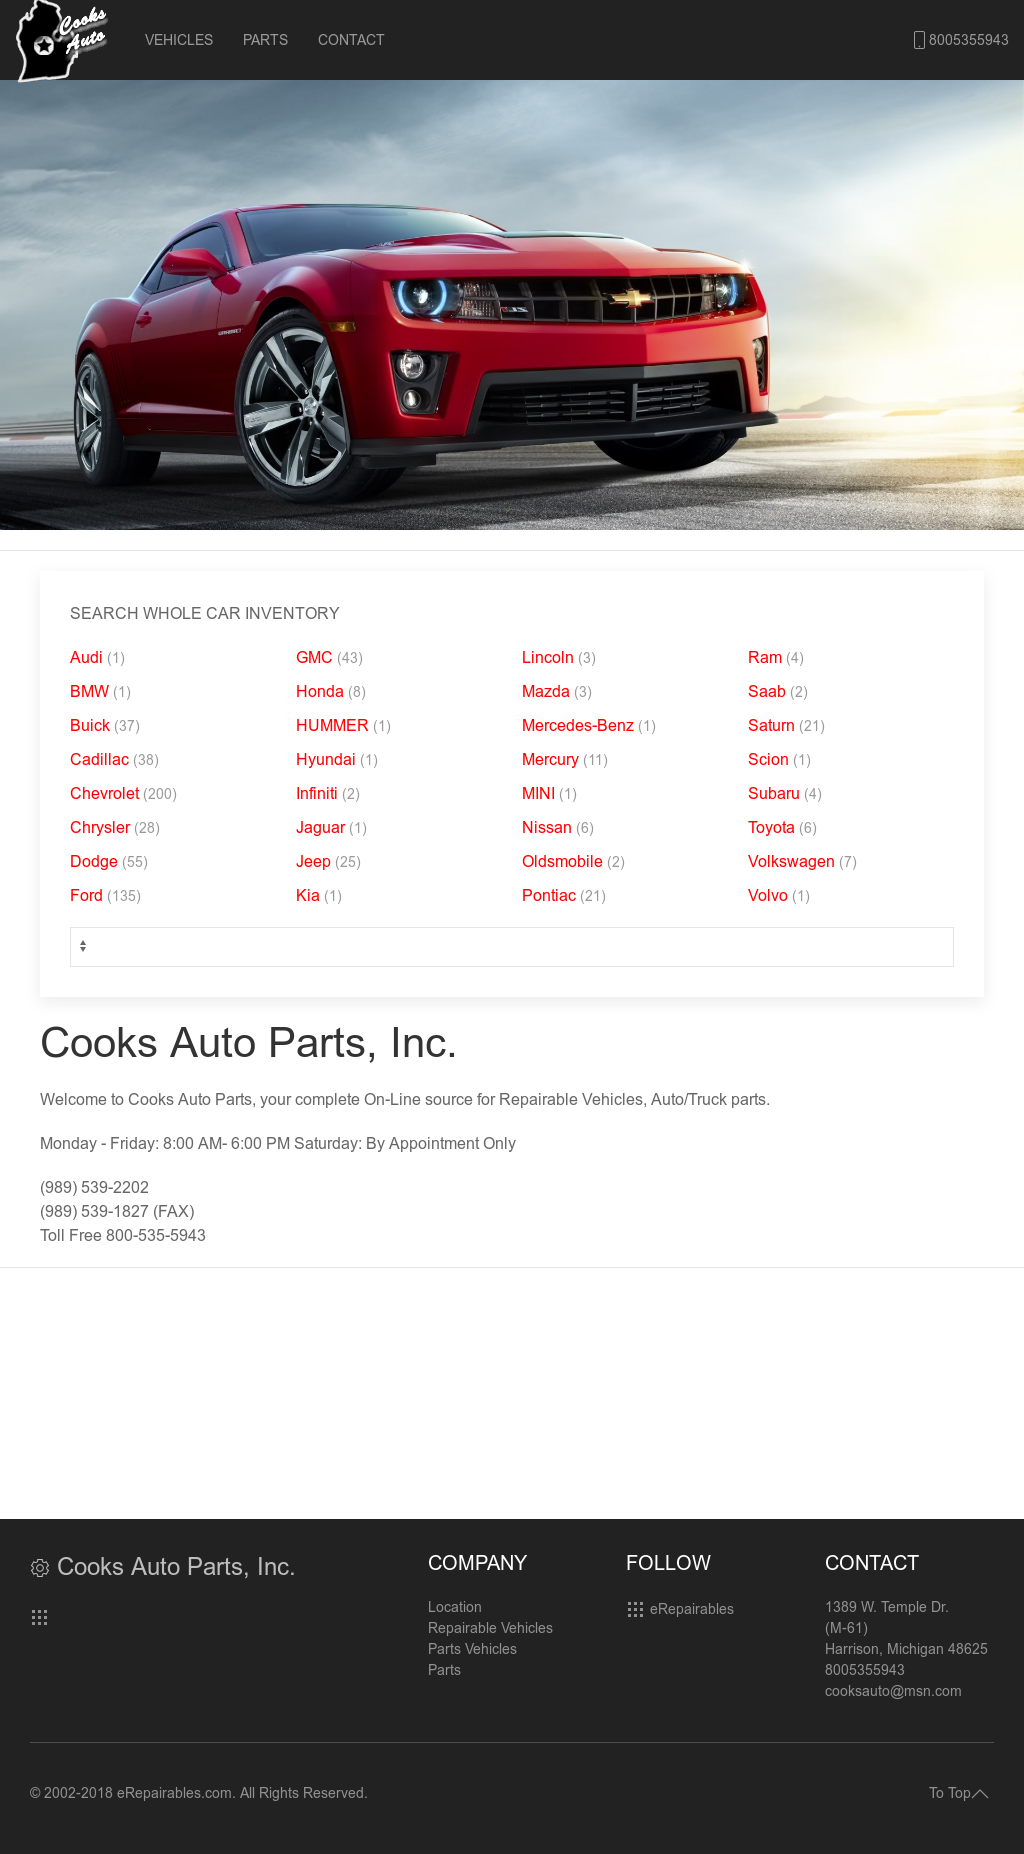 Cooks Car Company >> Cooks Auto Parts Competitors Revenue And Employees Owler Company